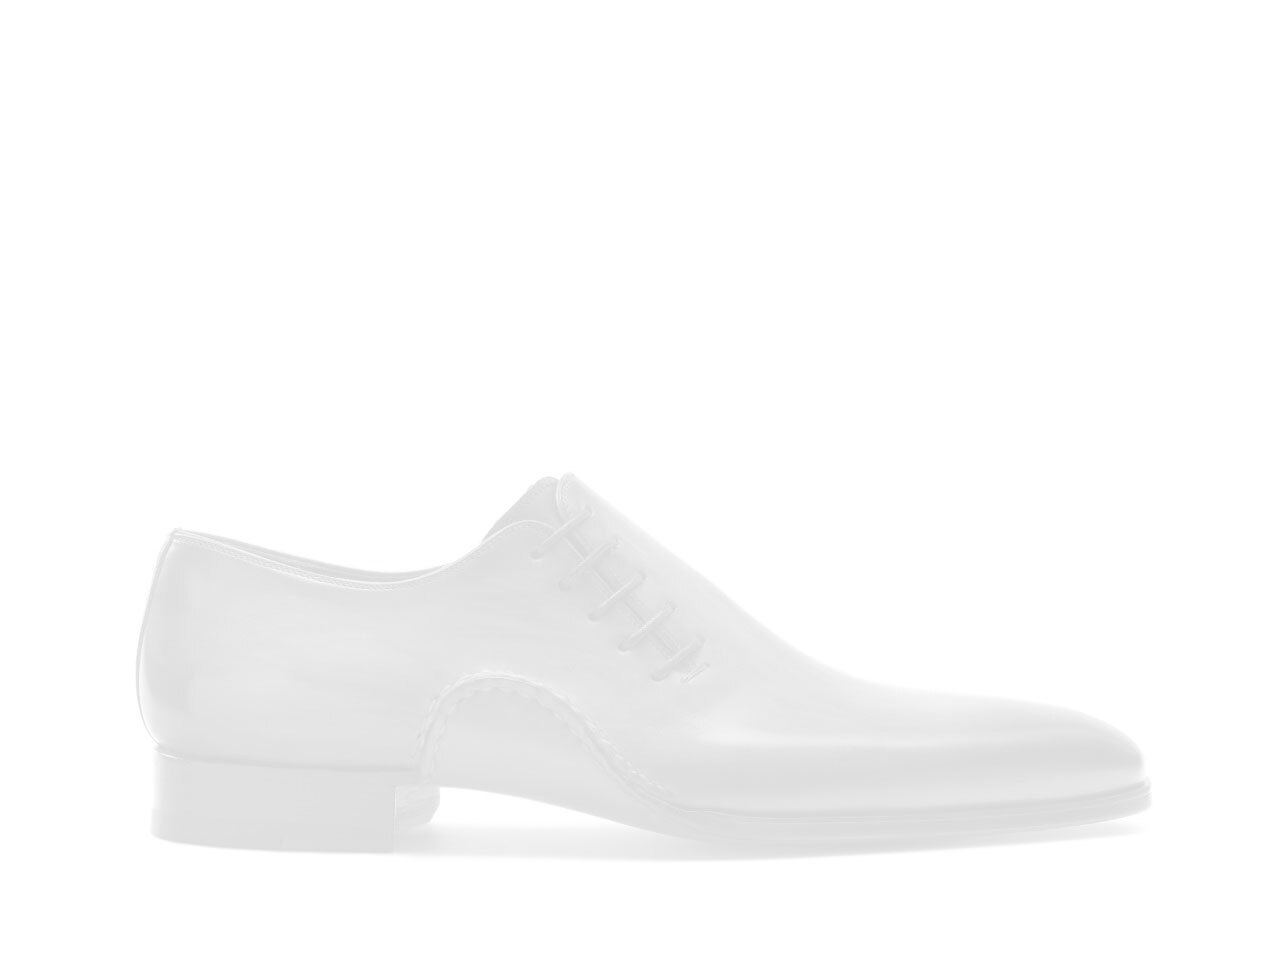 Side view of the Magnanni Brava Tinto Men's Sneakers